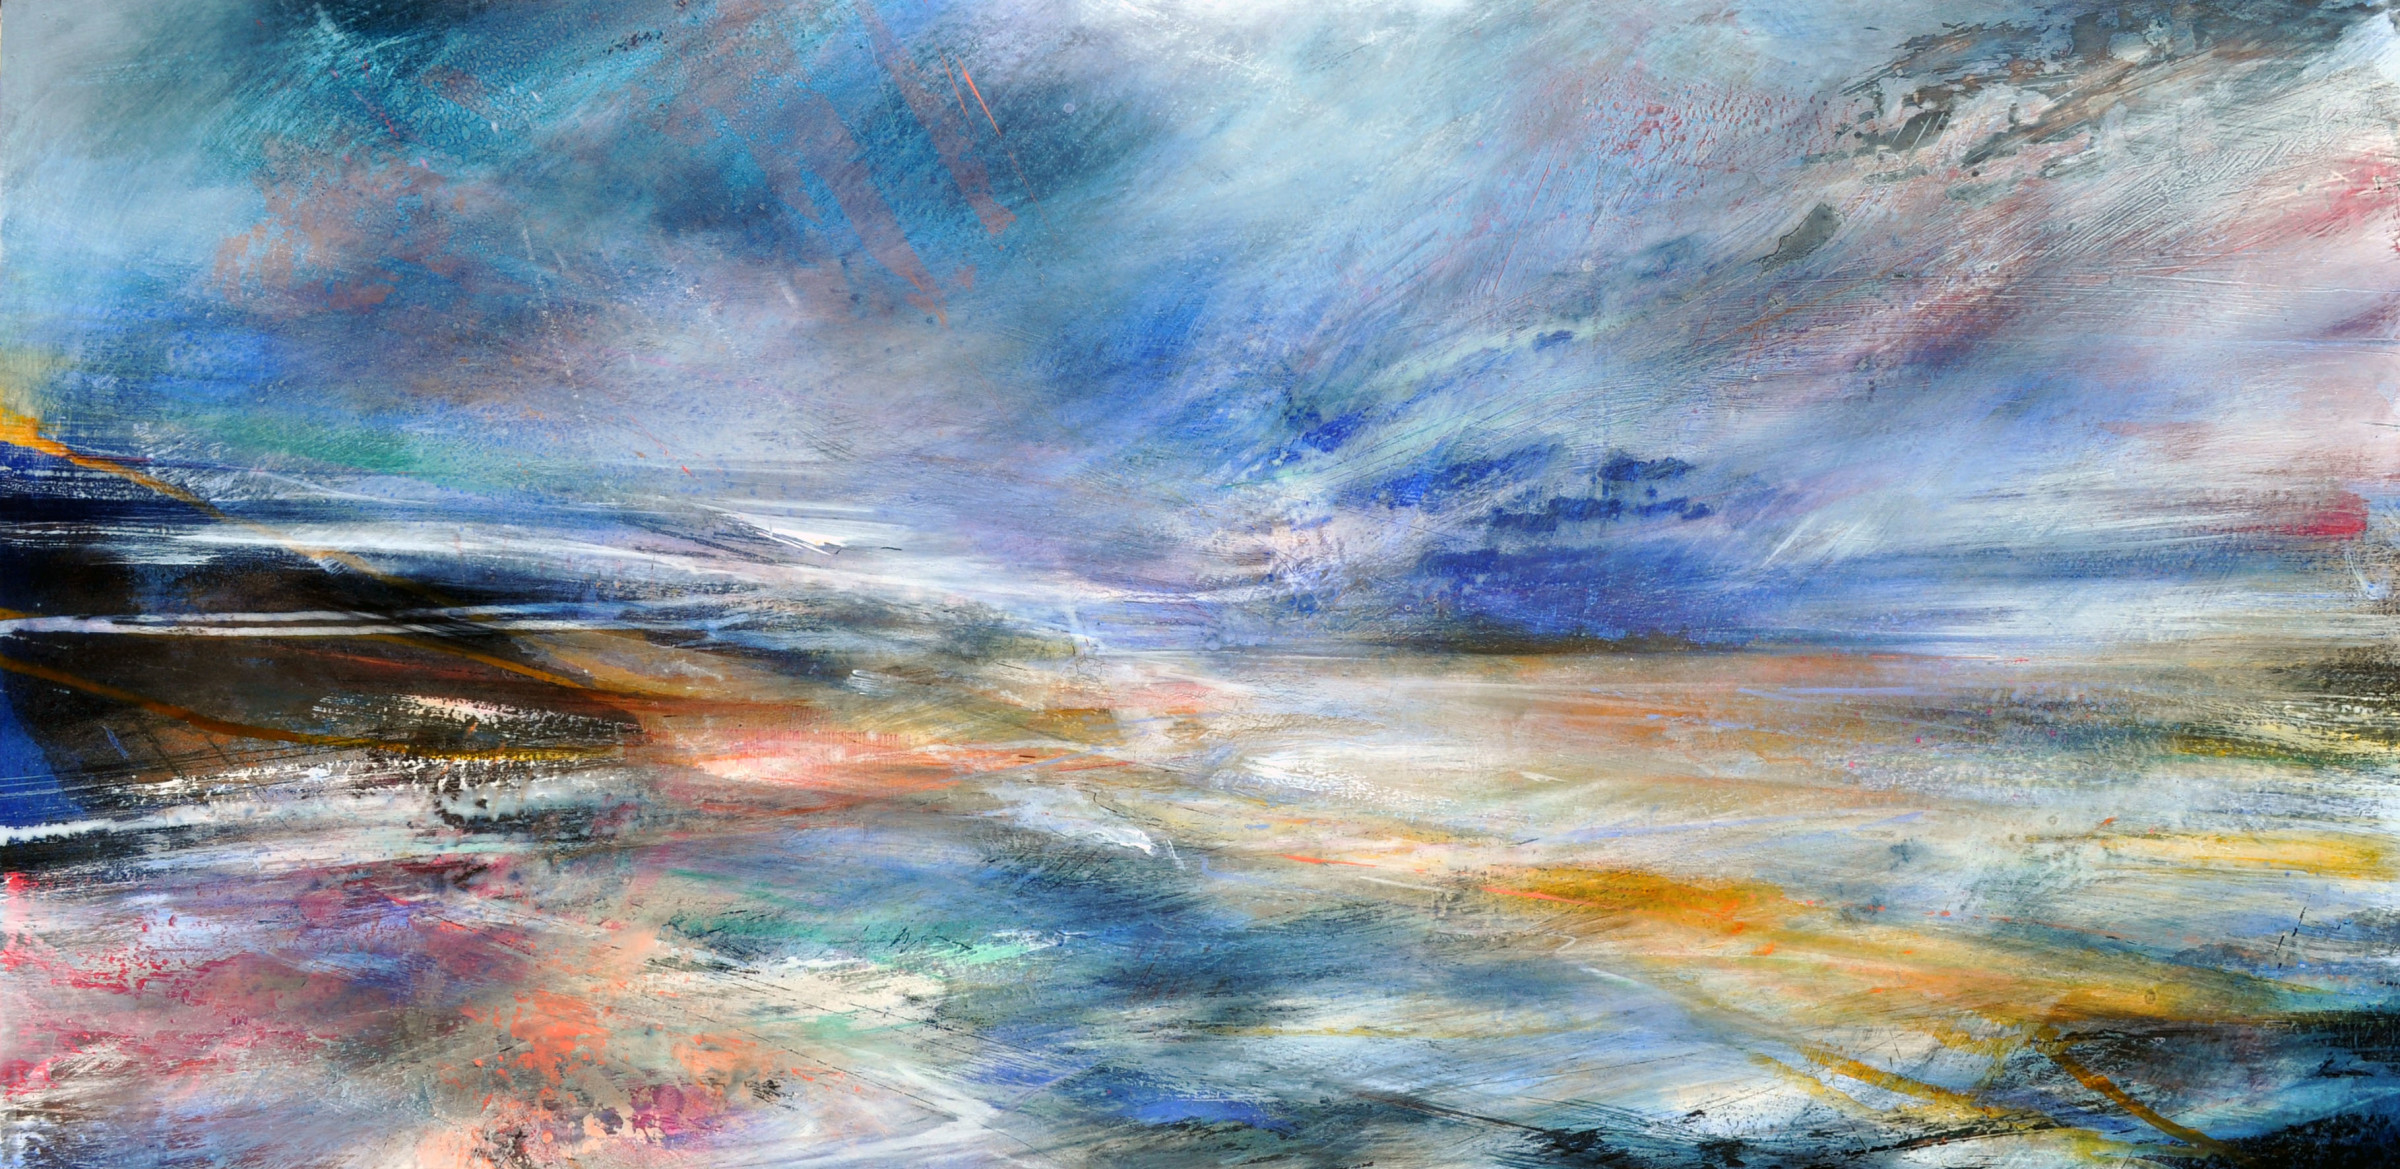 """<span class=""""link fancybox-details-link""""><a href=""""/artists/90-freya-horsley/works/5536-freya-horsley-drift-through-2018/"""">View Detail Page</a></span><div class=""""artist""""><strong>Freya Horsley</strong></div> <div class=""""title""""><em>Drift Through</em>, 2018</div> <div class=""""signed_and_dated"""">signed on reverse</div> <div class=""""medium"""">mixed media on board</div> <div class=""""dimensions"""">59 x 120 cm<br /> 23 1/4 x 47 1/4 inches</div><div class=""""copyright_line"""">£ 175 x 10 Months, OwnArt 0% APR</div>"""